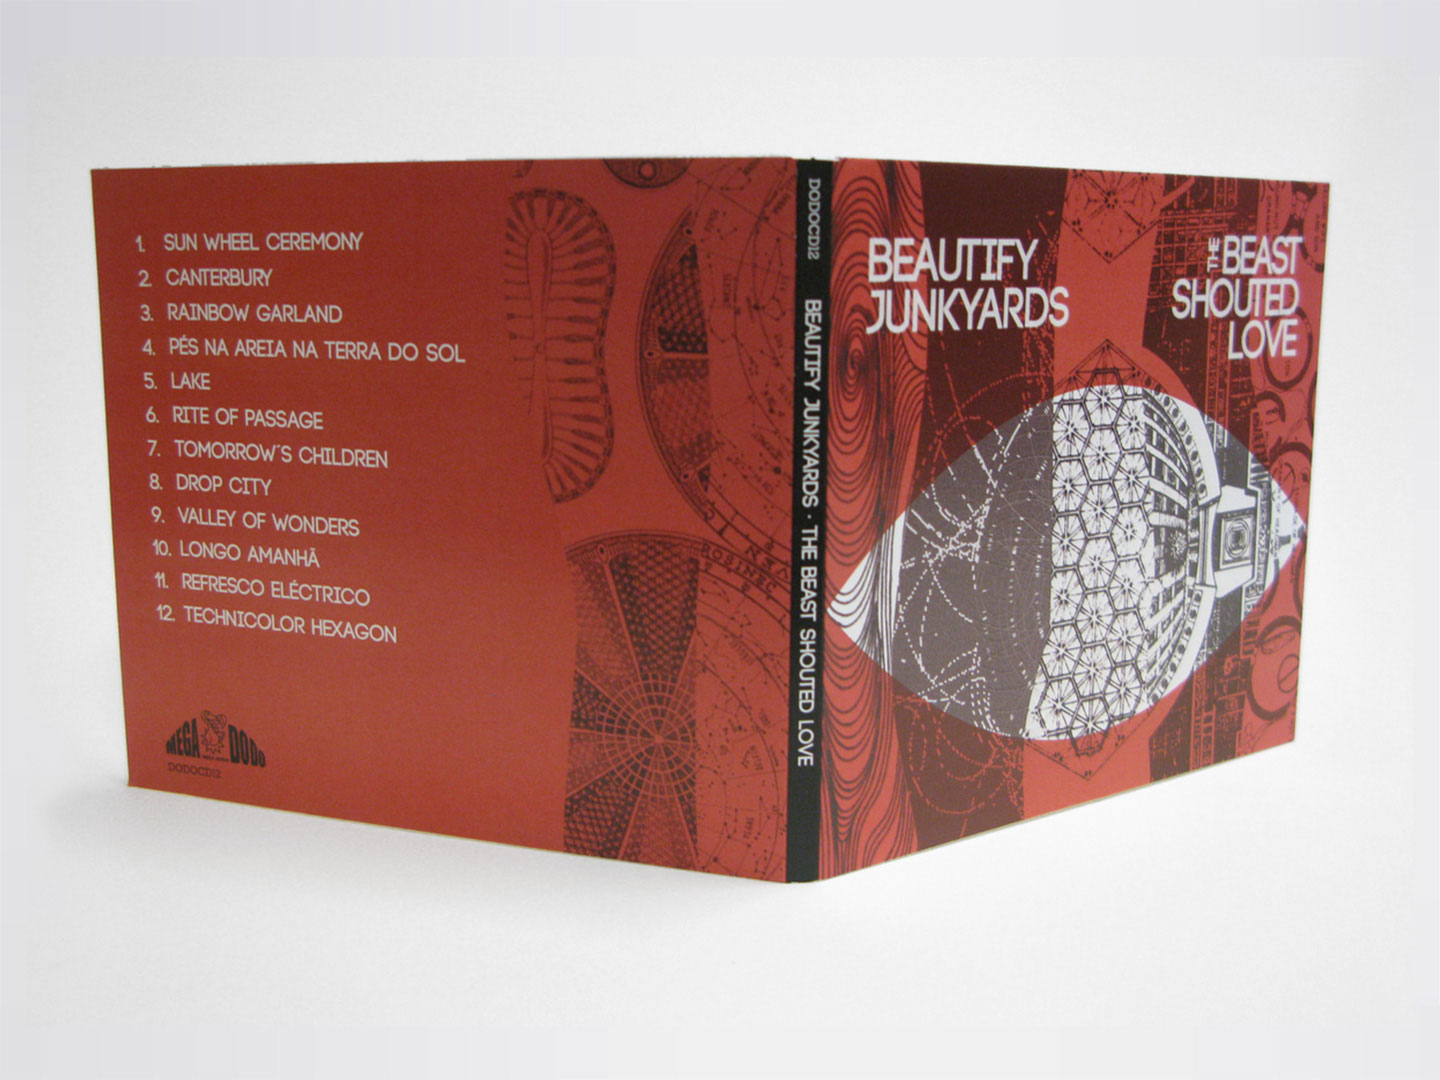 Beautify Junkyards - The Beast Shouted Love - CD box